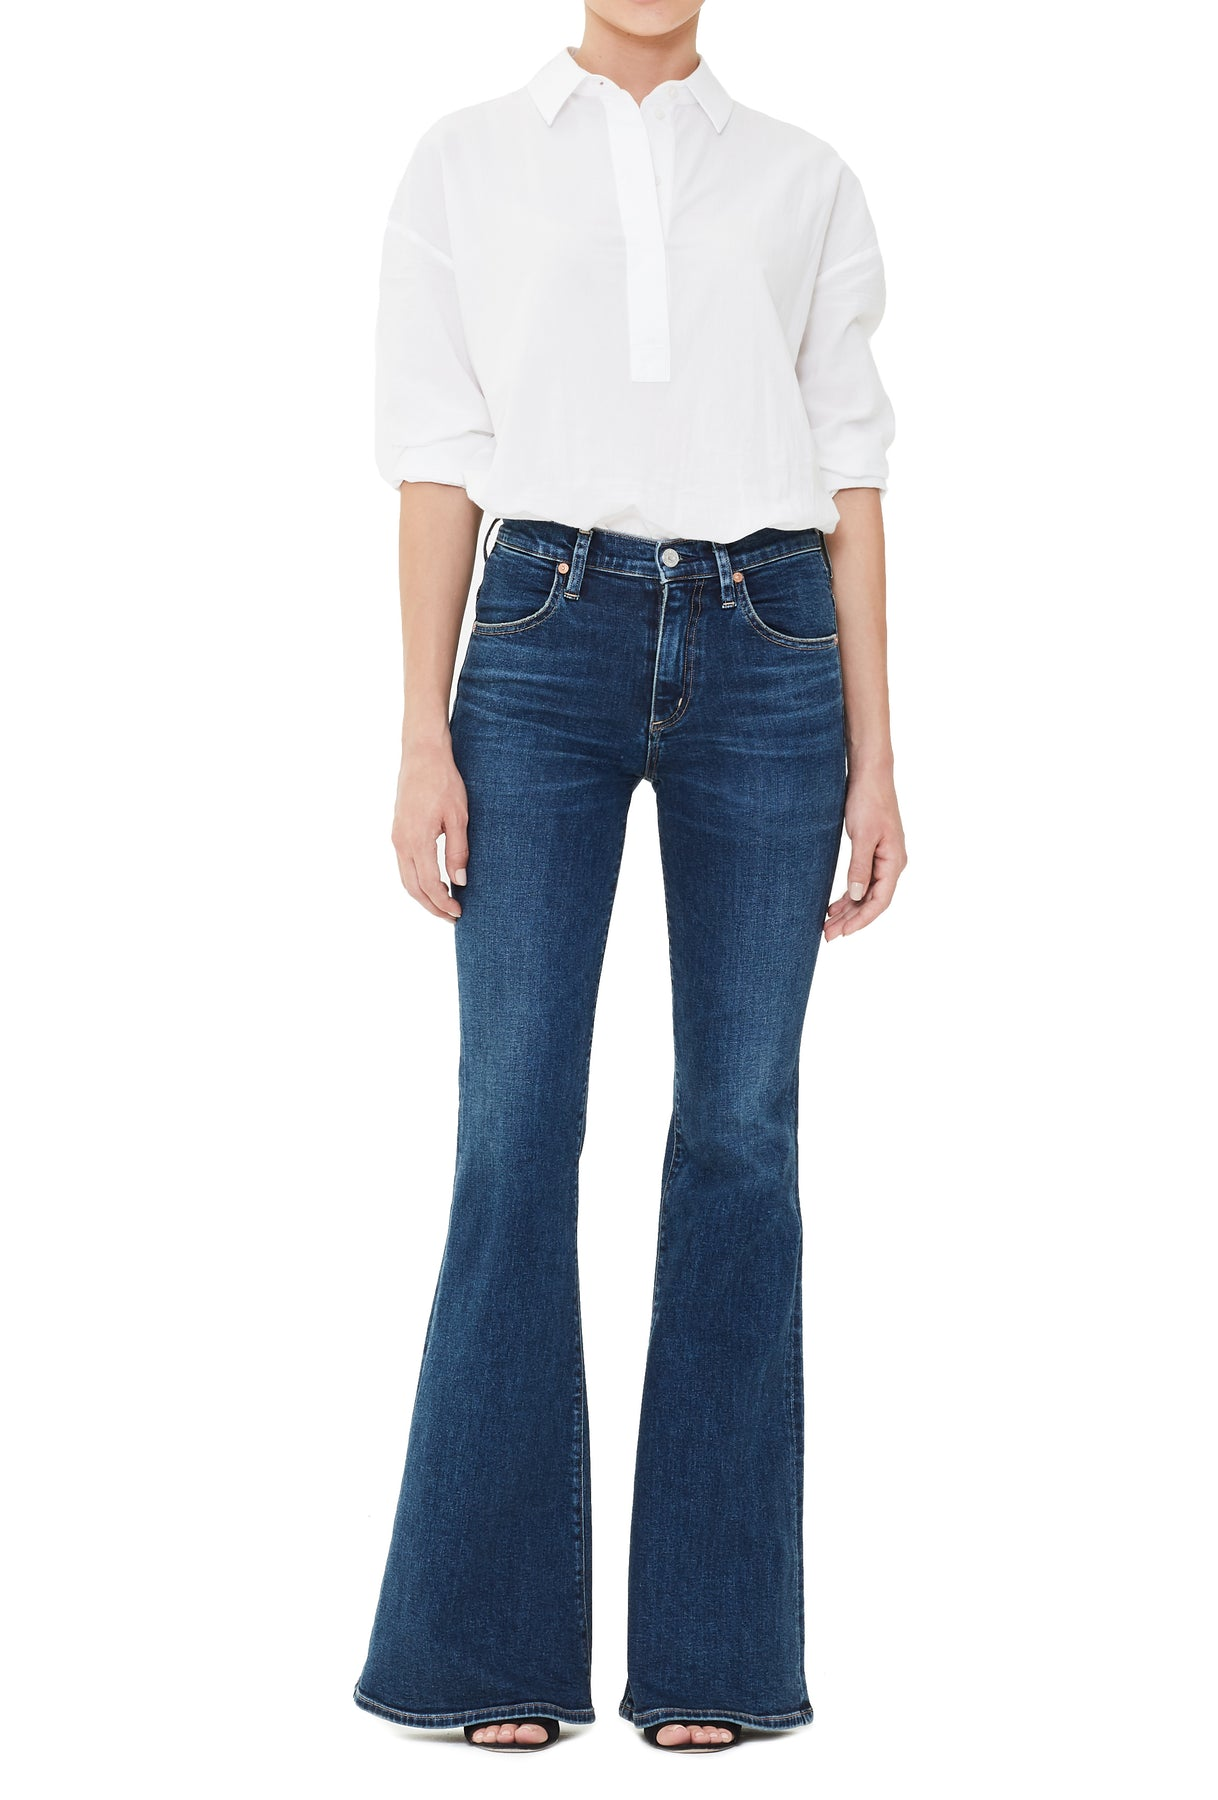 official site cheaper official shop Citizens of Humanity- Chloe Mid Rise Super Flare Jeans in Dedication Wash